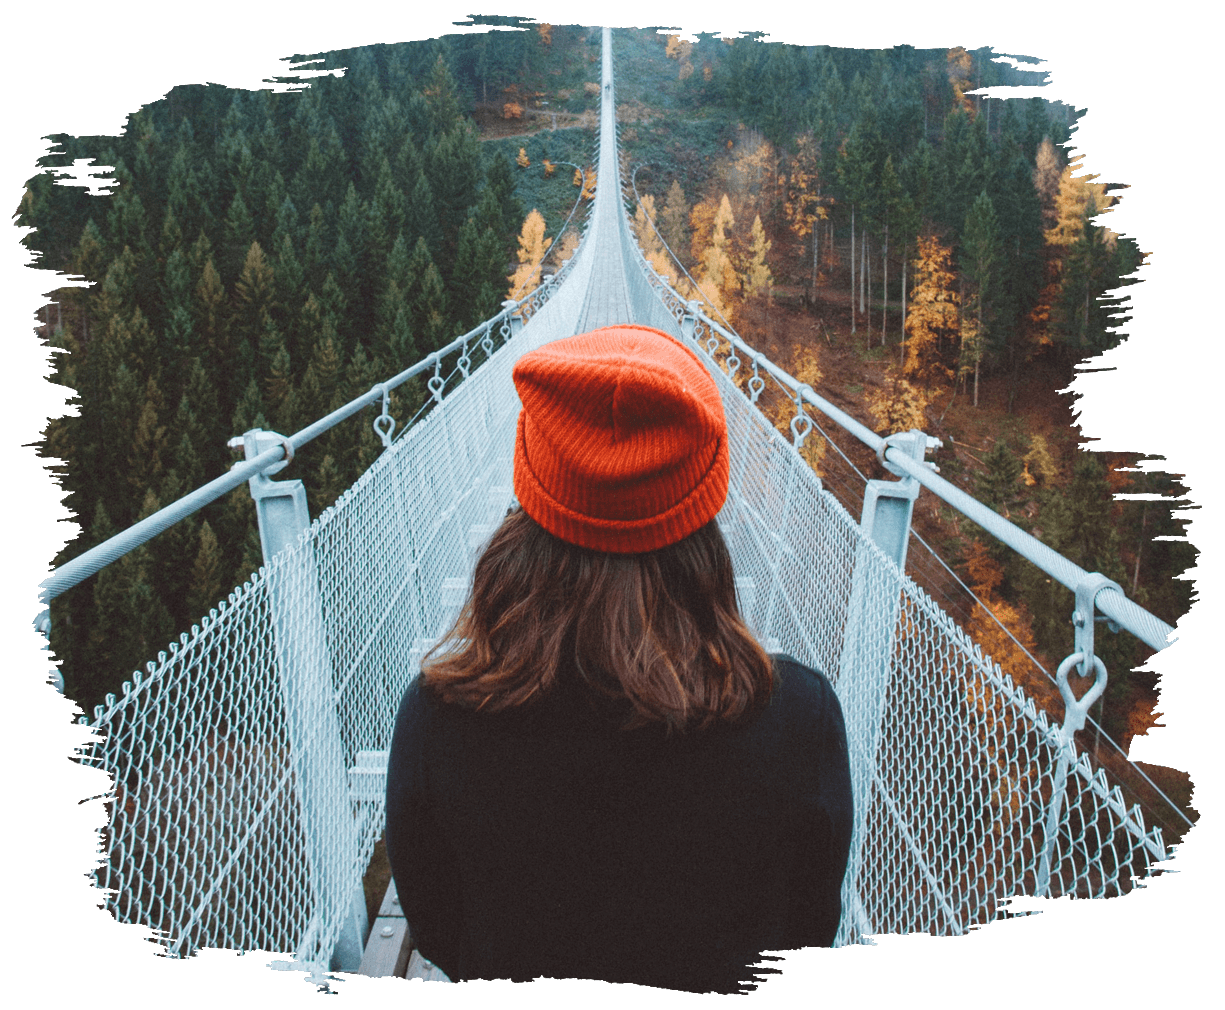 This is an image of a person looking down over a bridge walk way